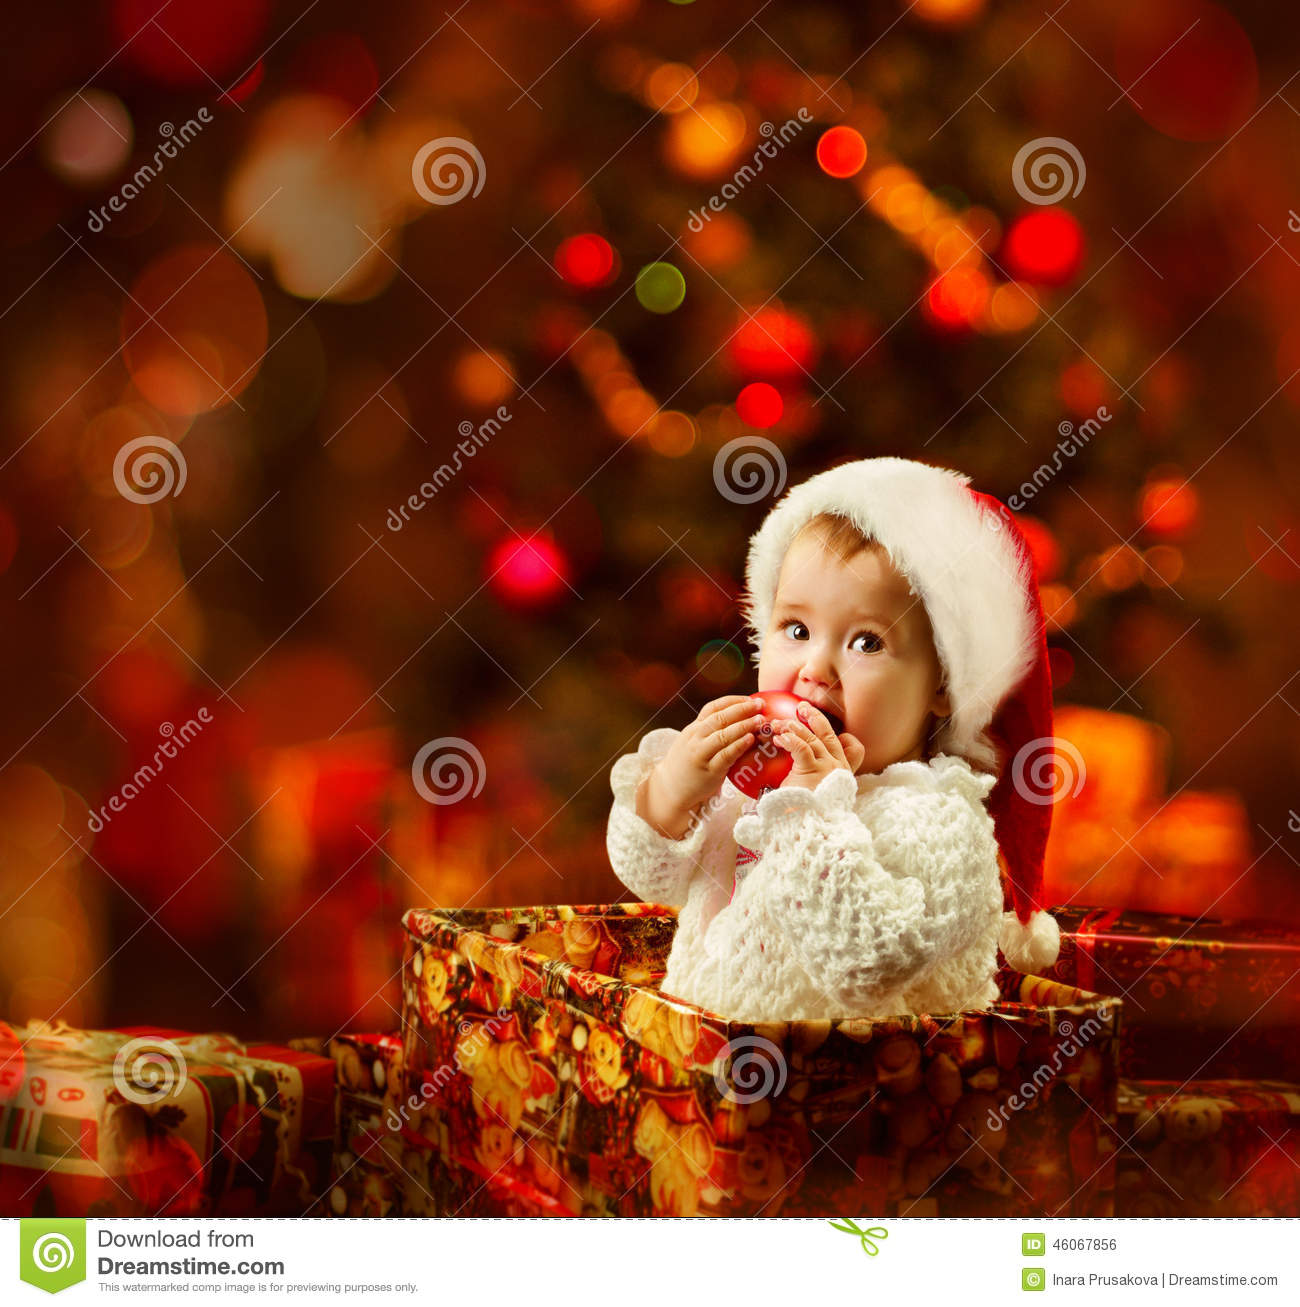 Lovely Girl Boy Wallpaper Christmas Baby In Santa Hat Holding Red Ball In Present